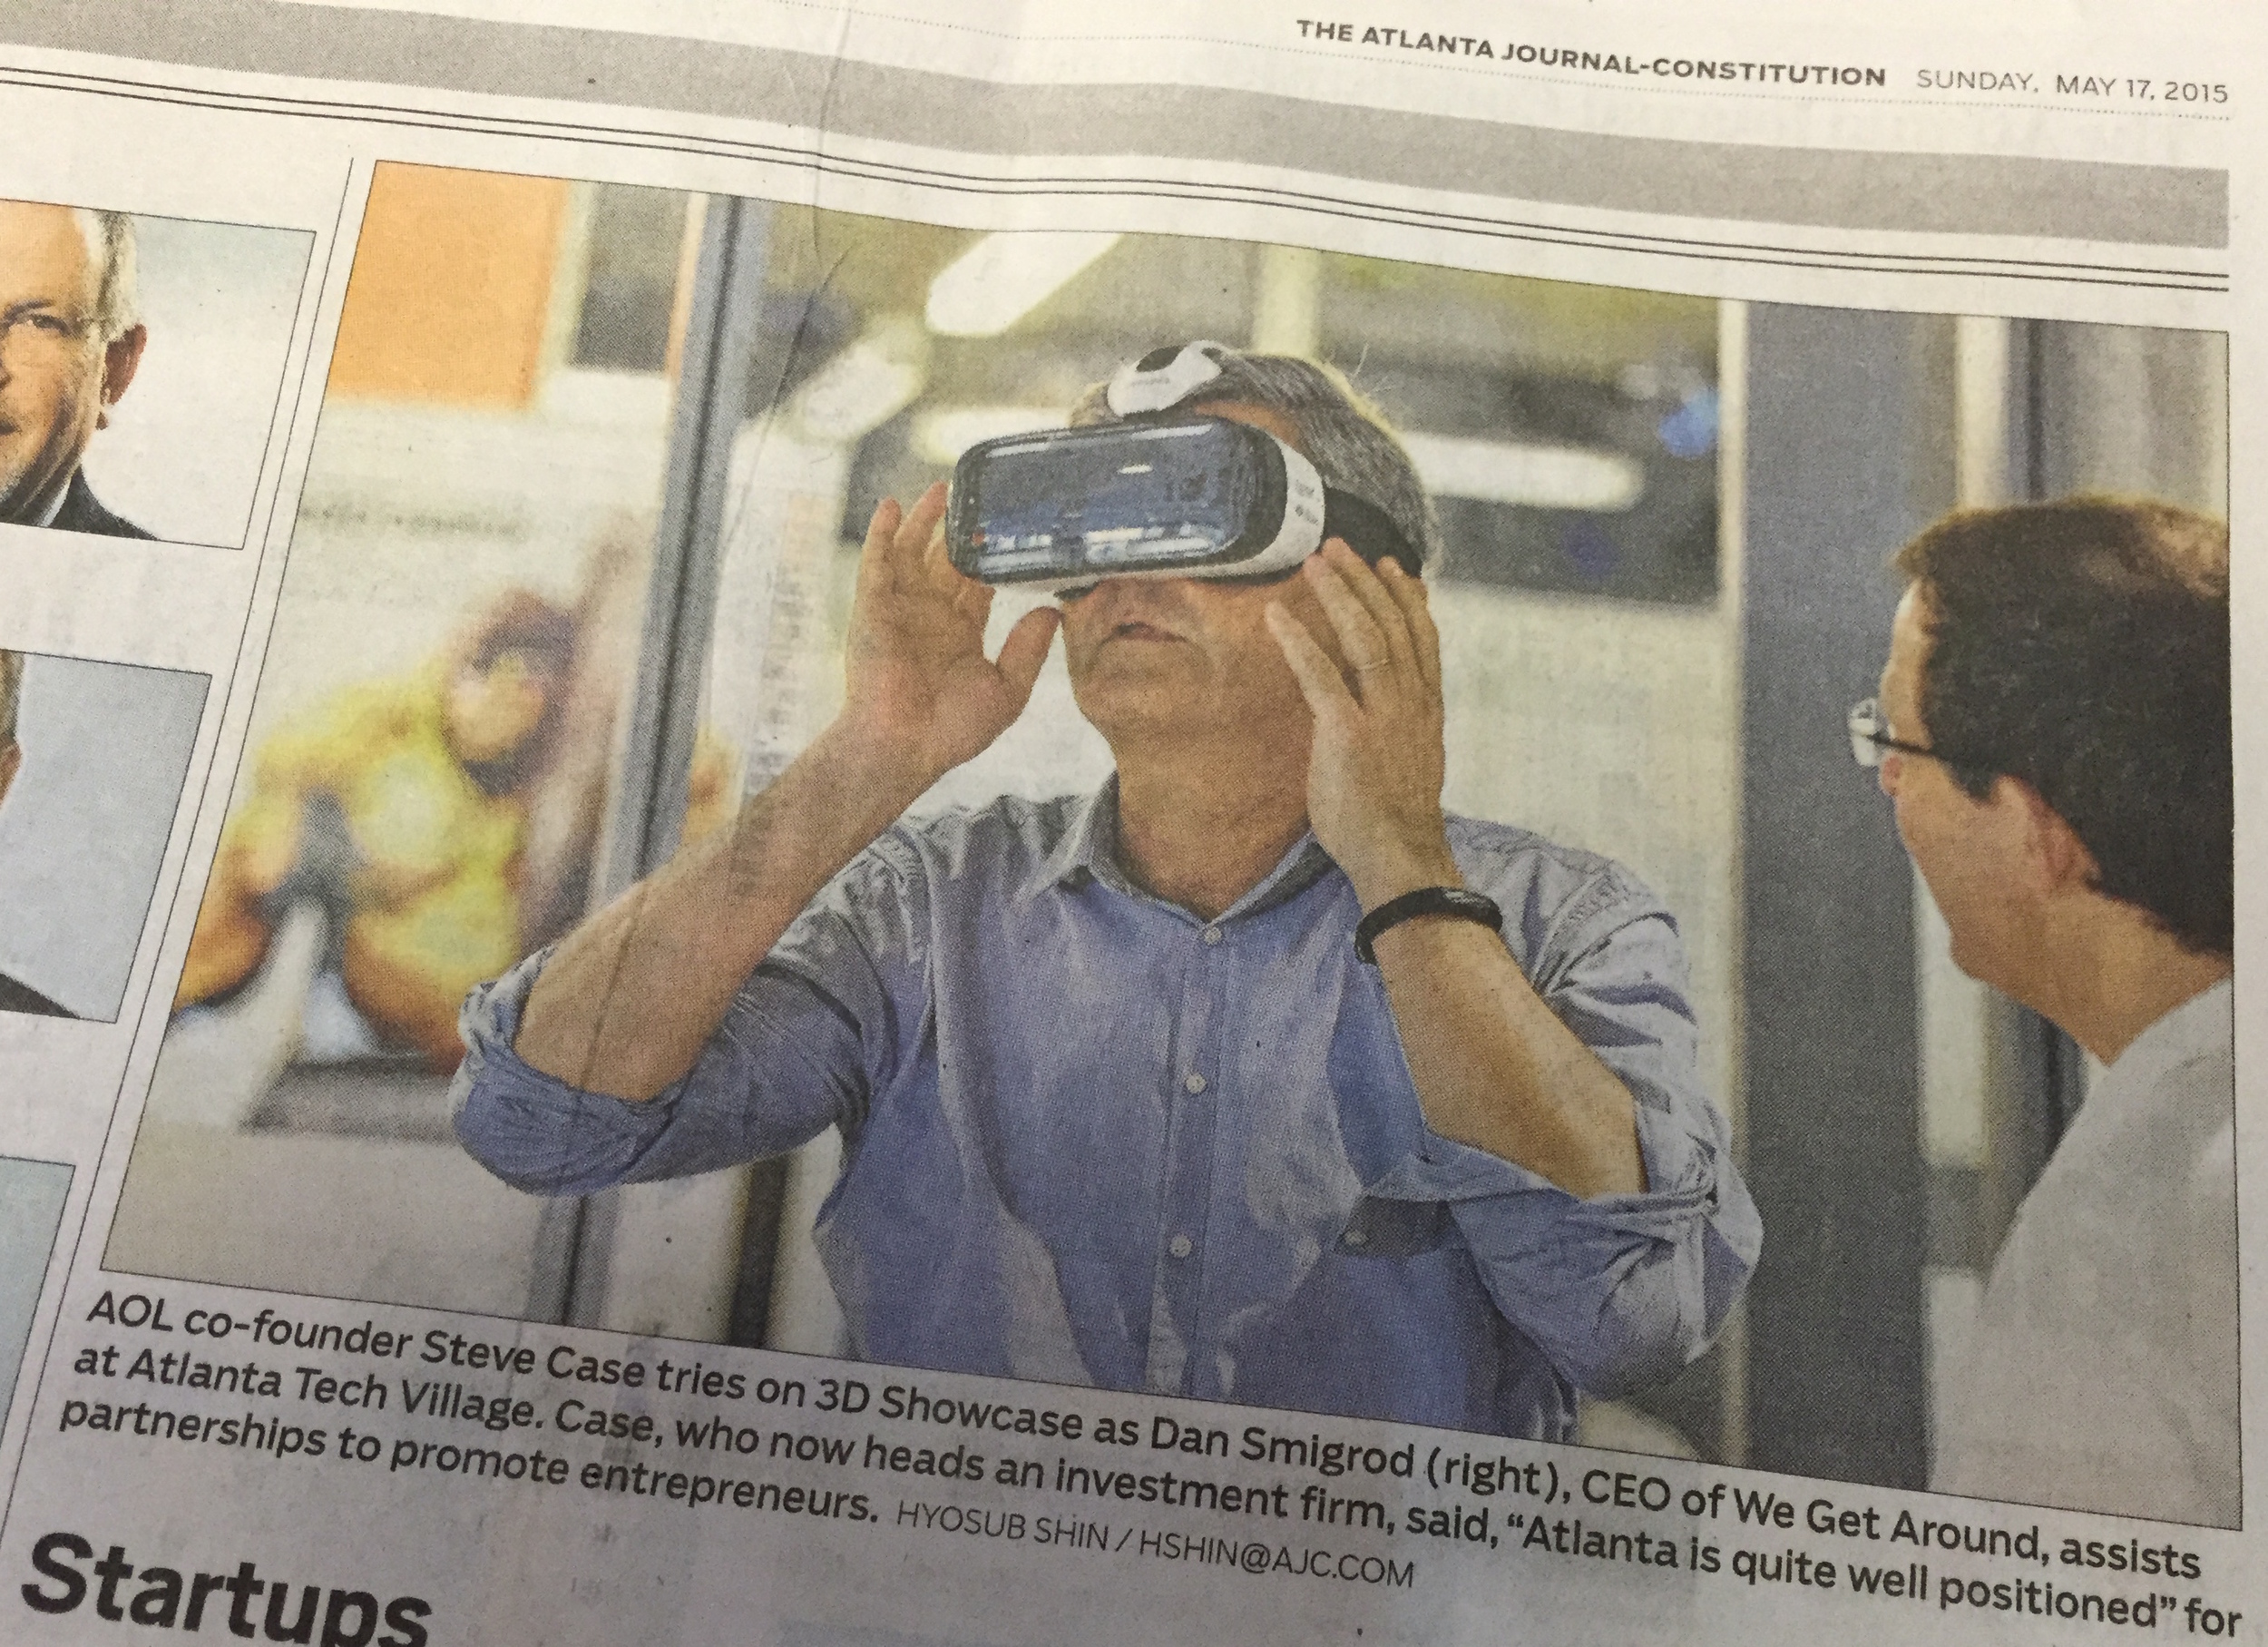 We Get Around Founder, CEO and Chief Photographer Dan Smigrod (right) demos Matterport Virtual Reality to AOL co-founder Steve Case. Image courtesy of the  Atlanta Journal=Constitution  | Photographer Hyosub Shin